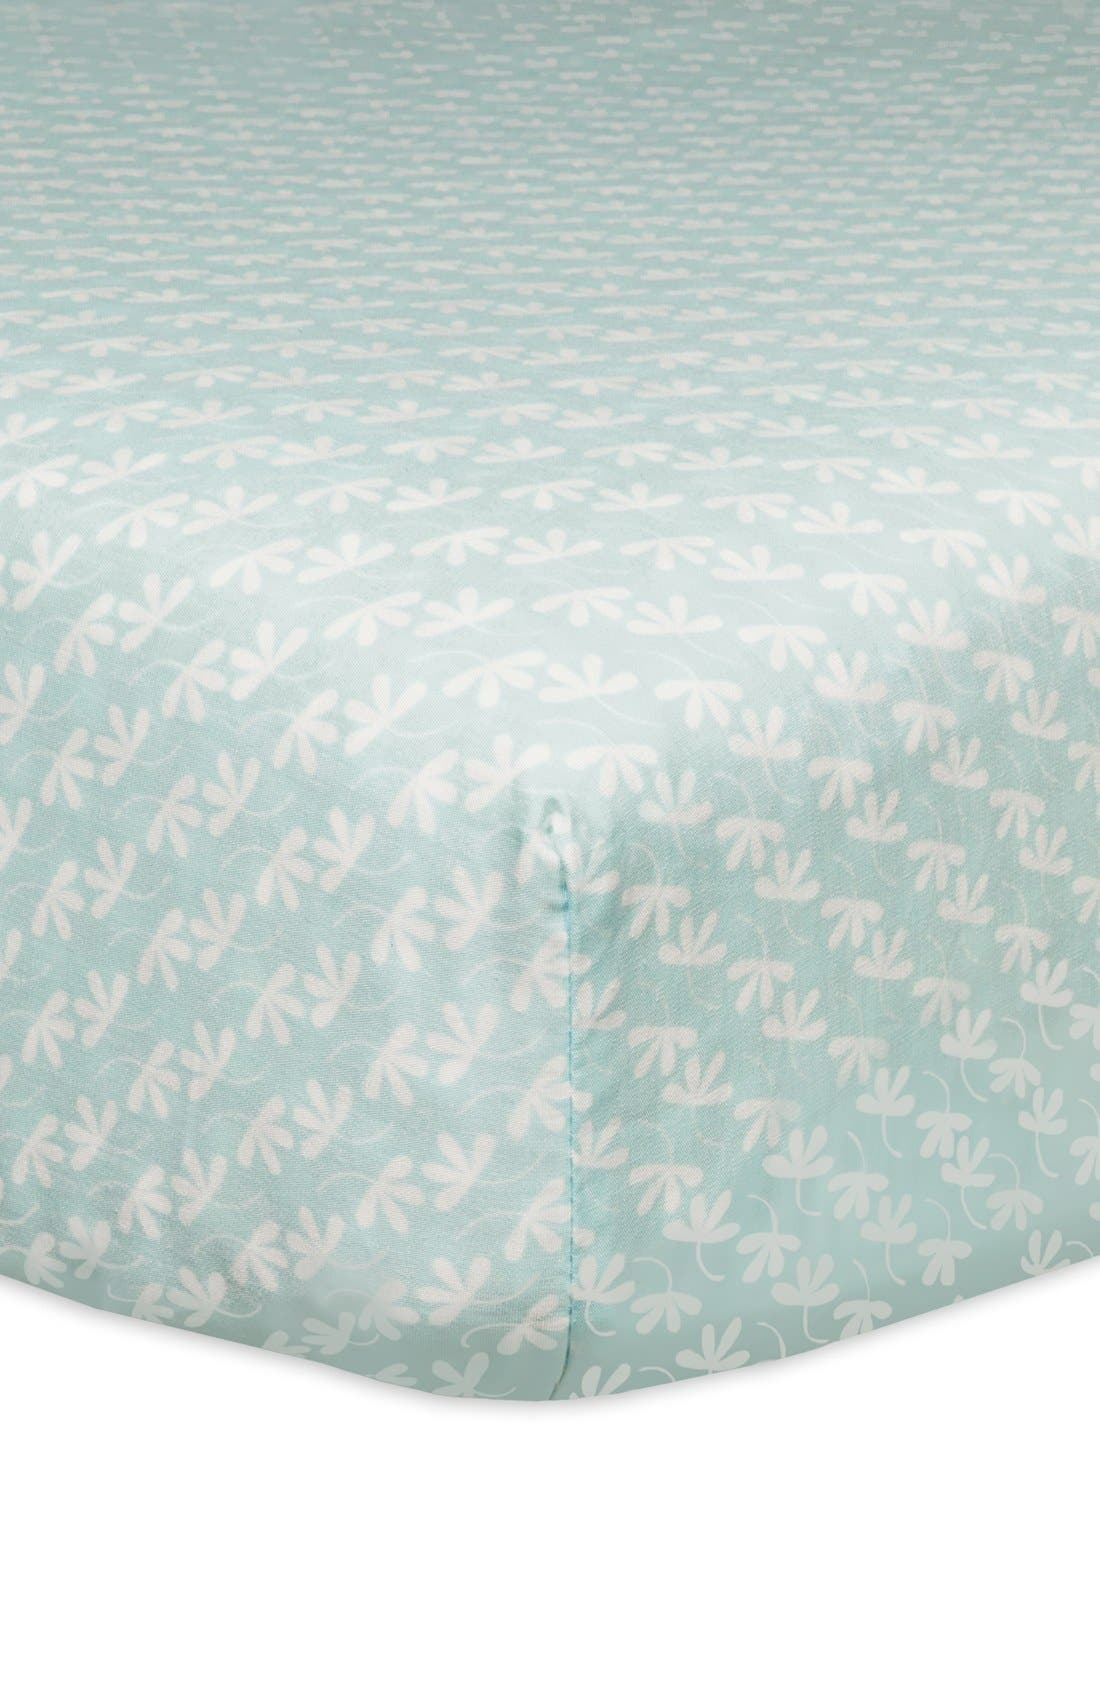 'Flora' Mini Crib Sheet, Changing Pad Cover, Stroller Blanket & Wall Decals,                             Alternate thumbnail 2, color,                             400